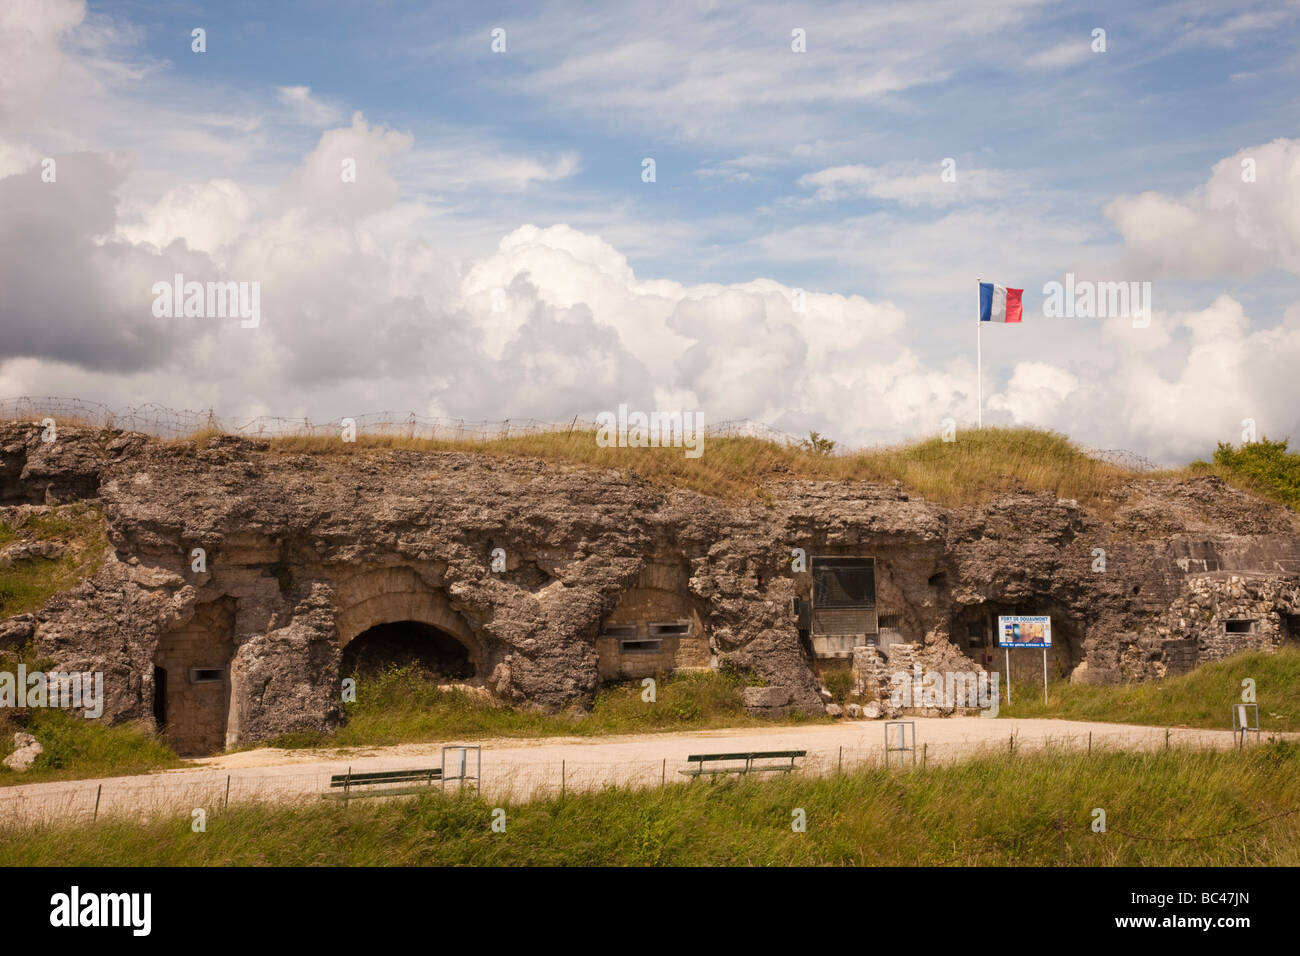 Douaumont Verdun Lorraine France Europe.  Fort de Douaumont WW1 fortification  for the battle of Verdun now a museum - Stock Image